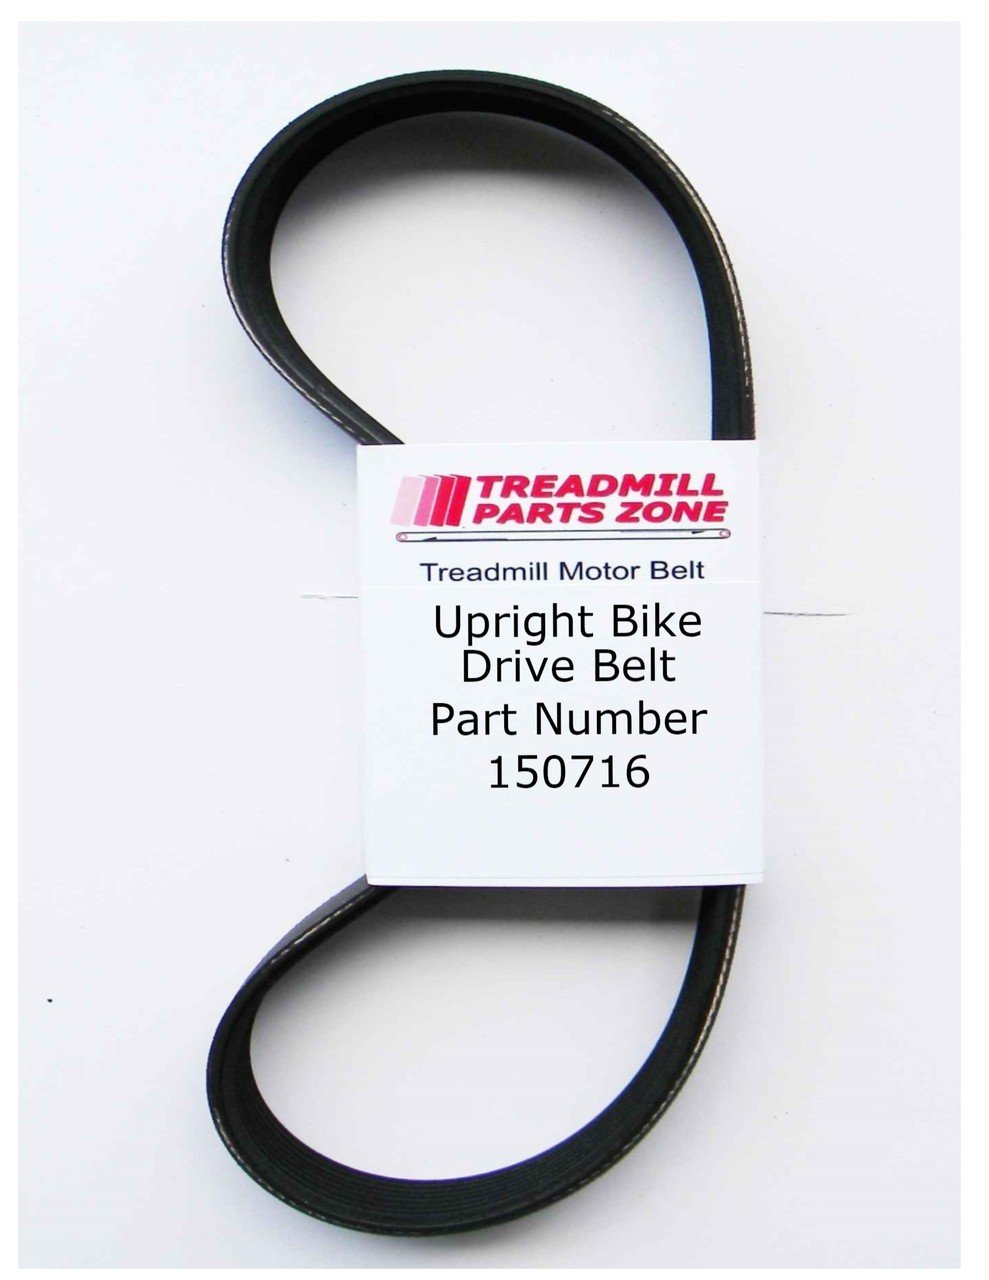 Pro Form Sears Model 212570 Dual Trainer Upright Bike Drive Belt Part Number 150716/ROWER by TreadmillPartsZone